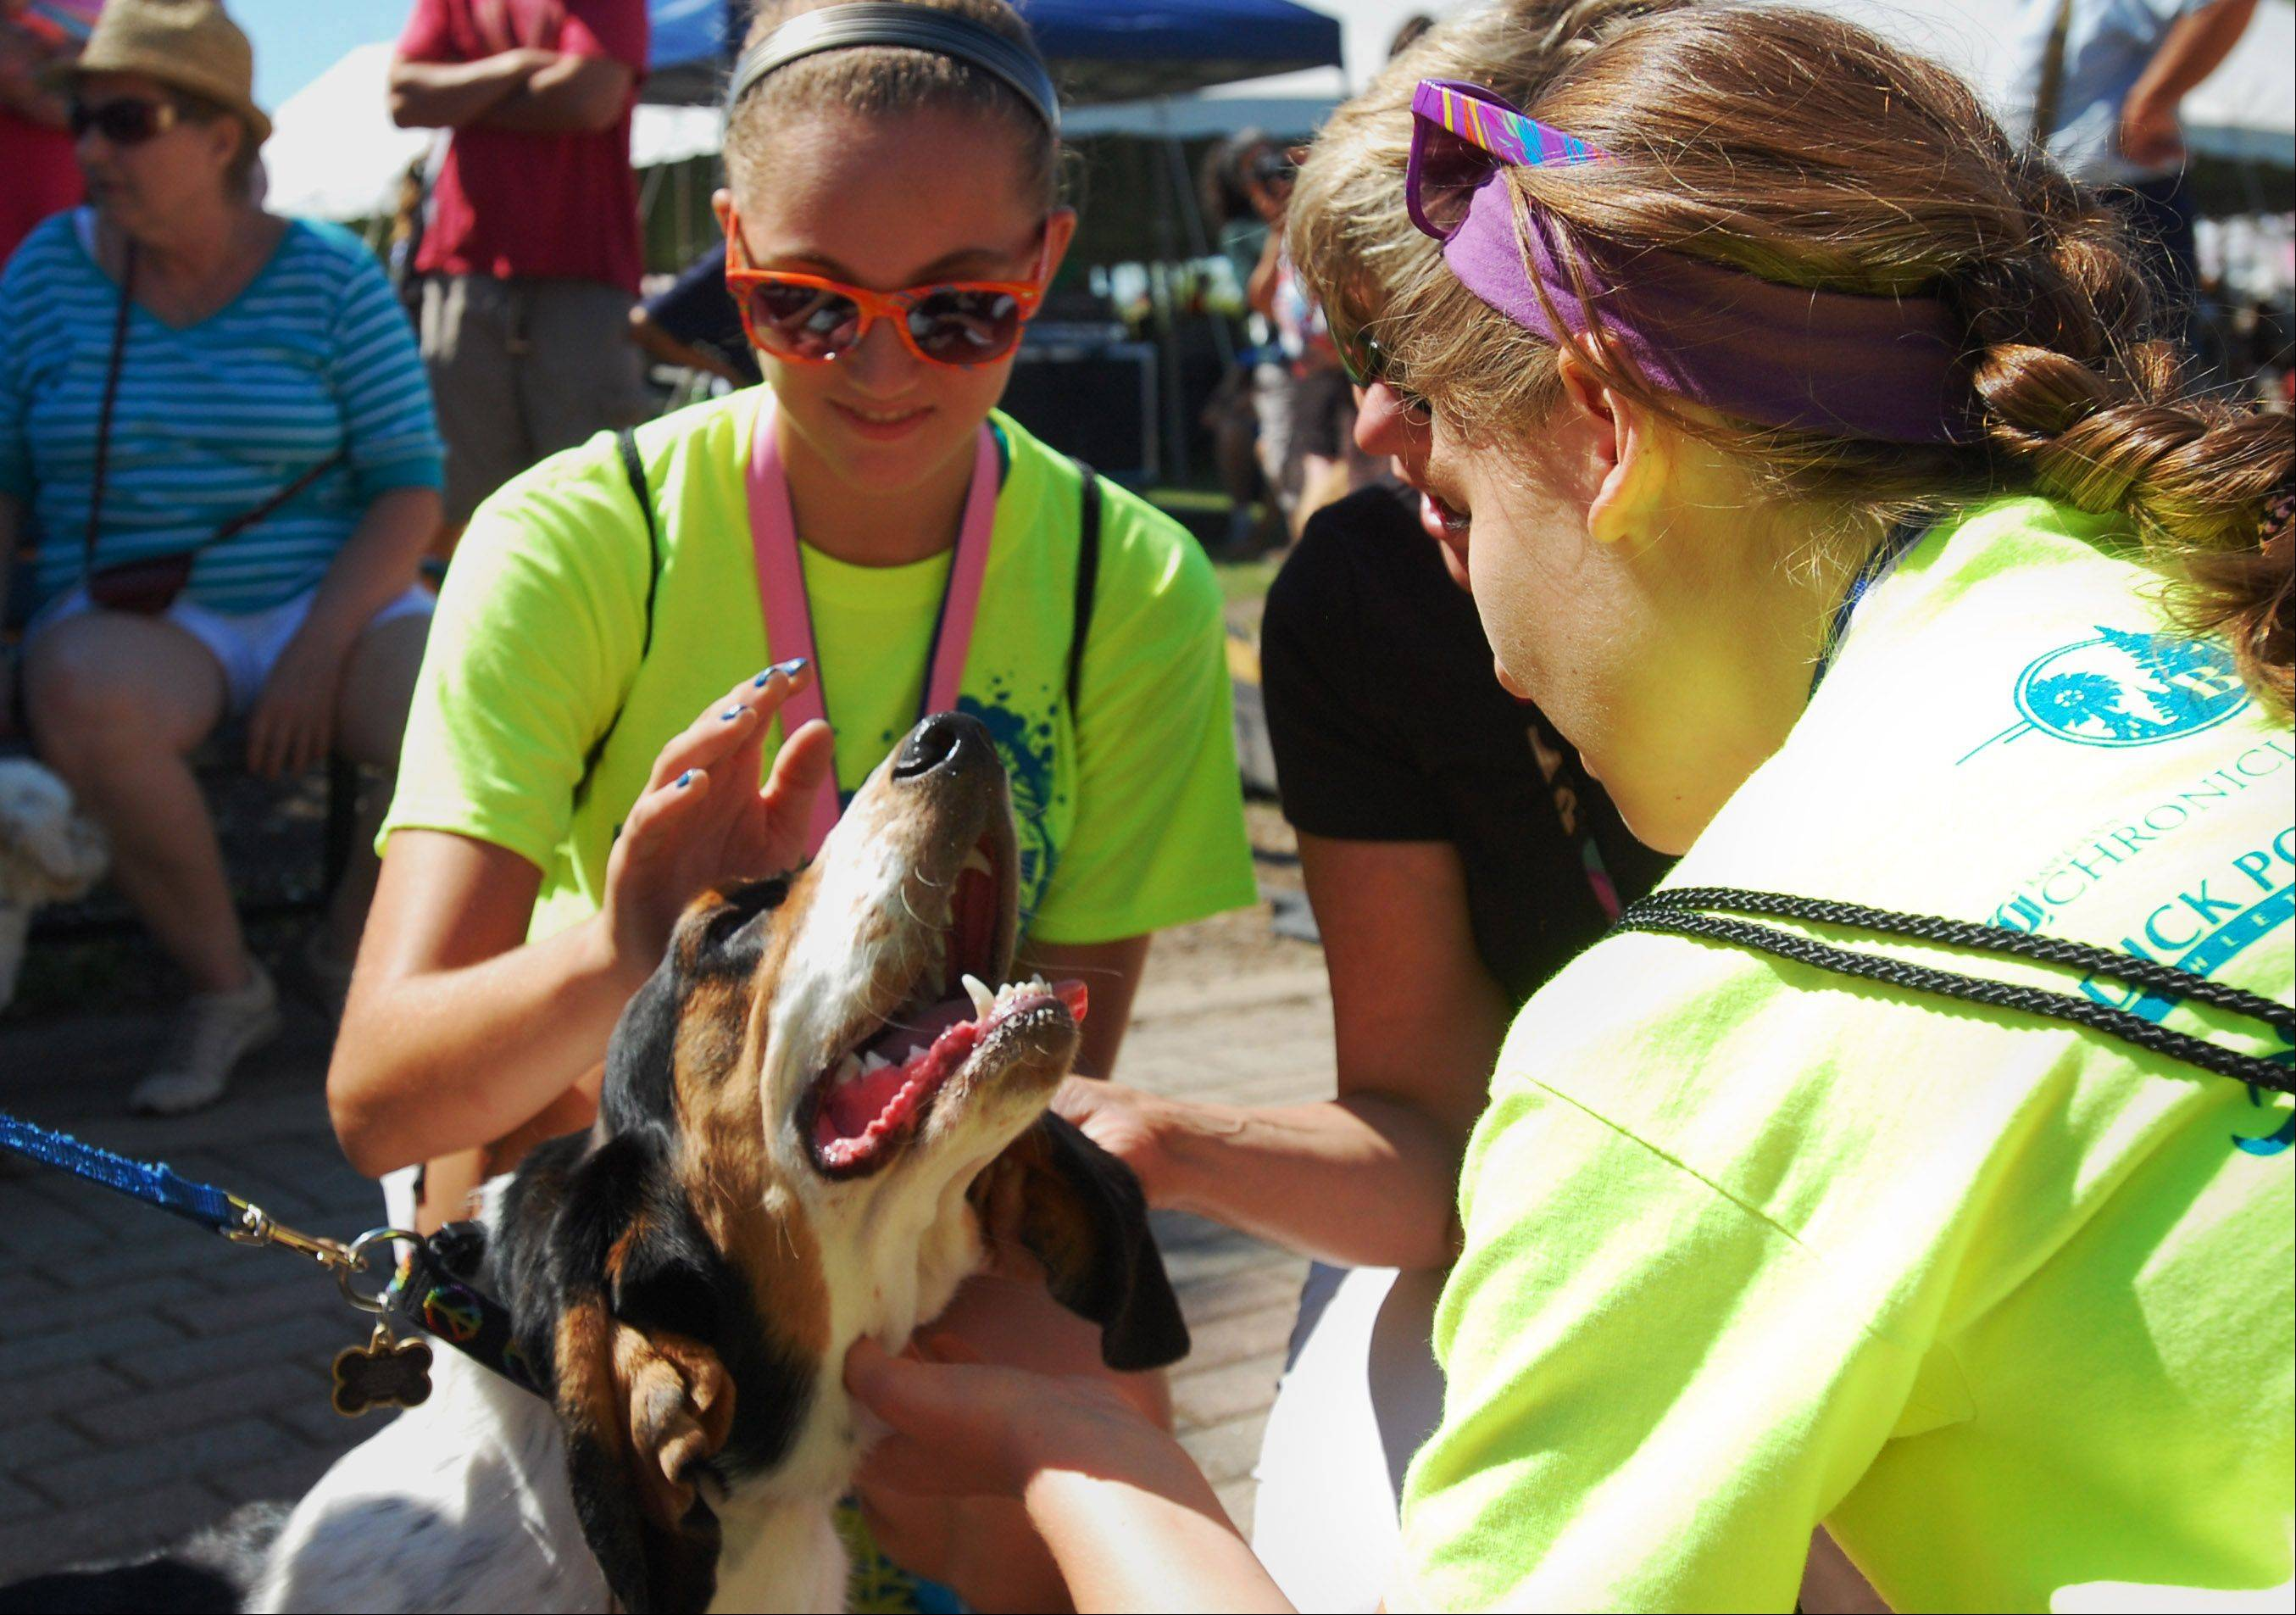 From left, Megan DalSanto, Kim DalSanto and Sierra Hobson, of Geneva meet Rocky Recklaus at the Windmill City Festival Saturday at the Riverwalk in Batavia. Rocky and his family participated in the Pet Parade and were in the running for the Longest Ears prize.